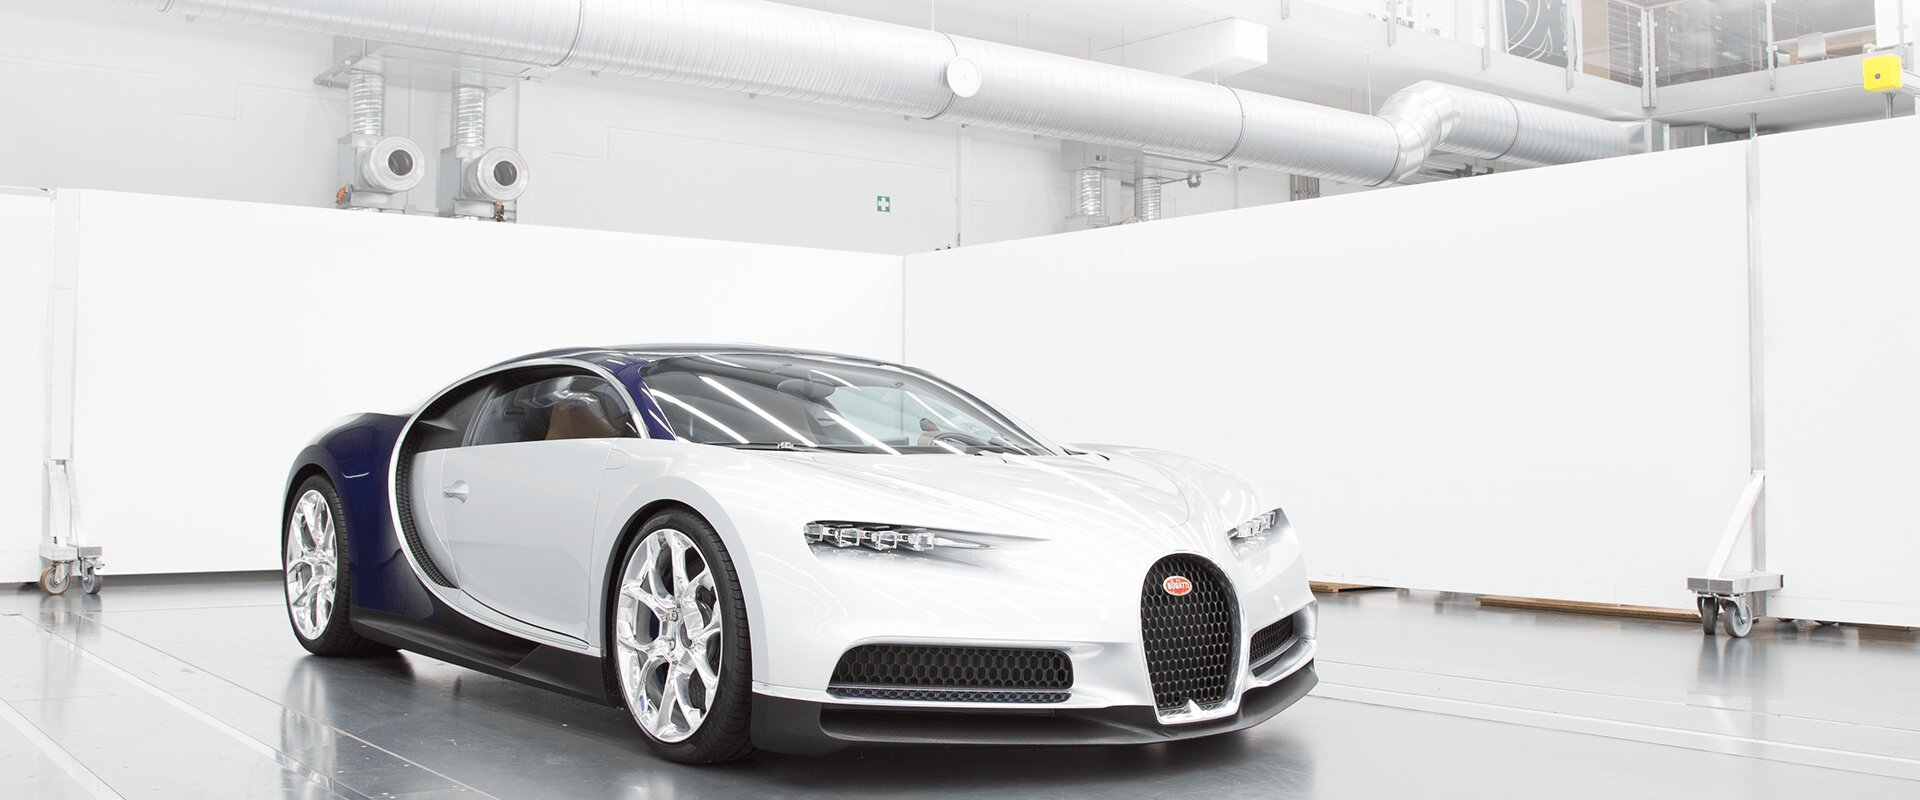 Bugatti financial